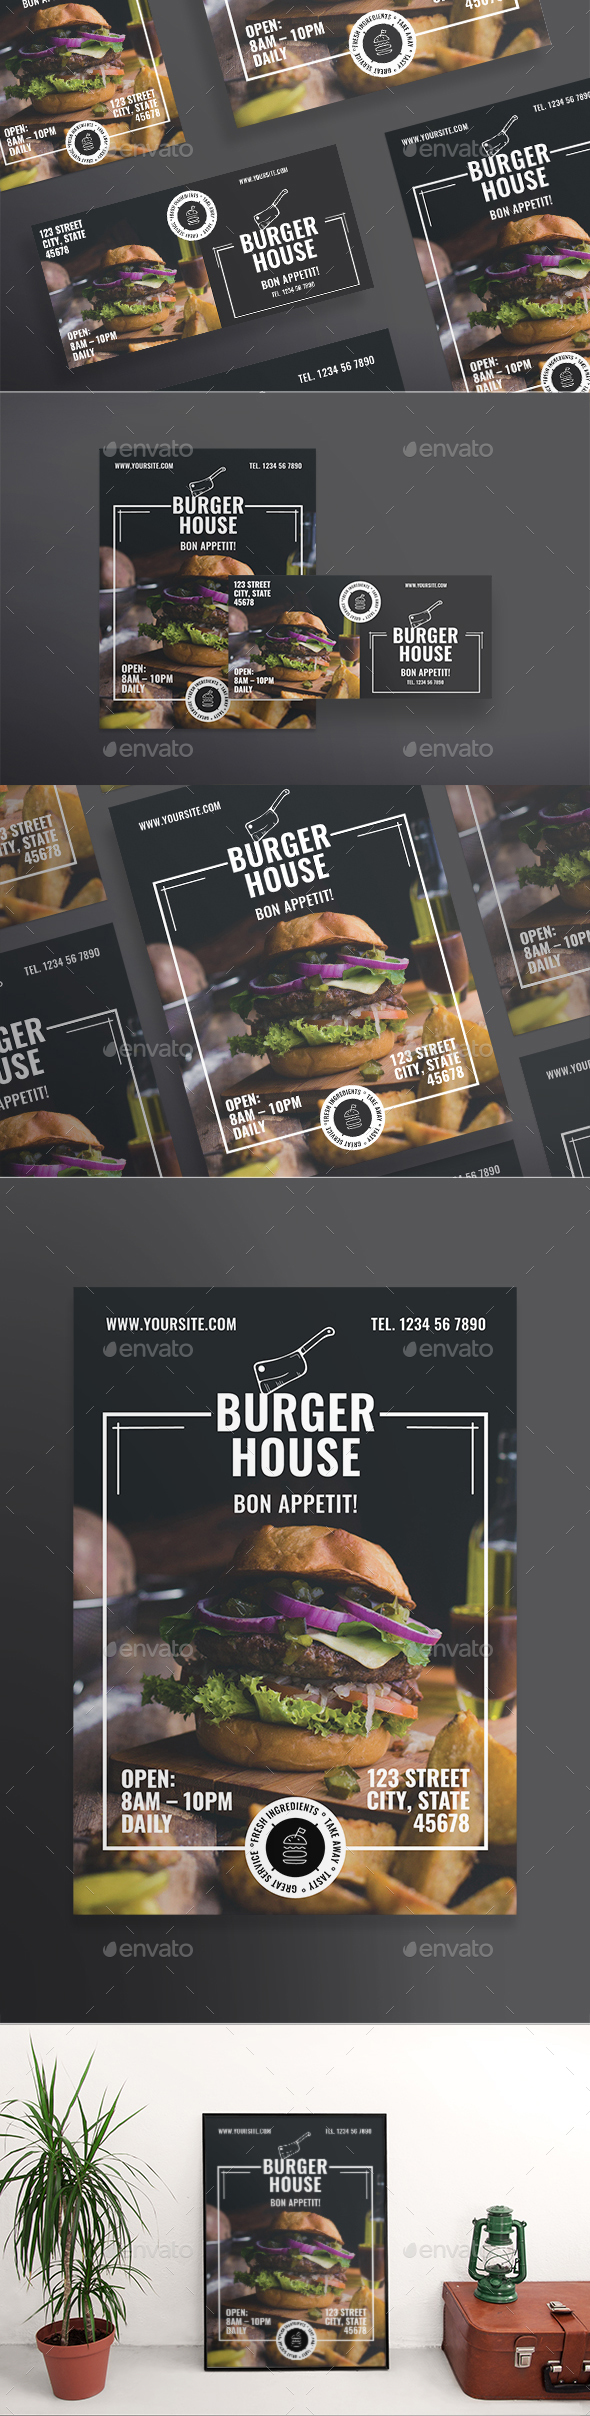 Burger House Flyers - Restaurant Flyers